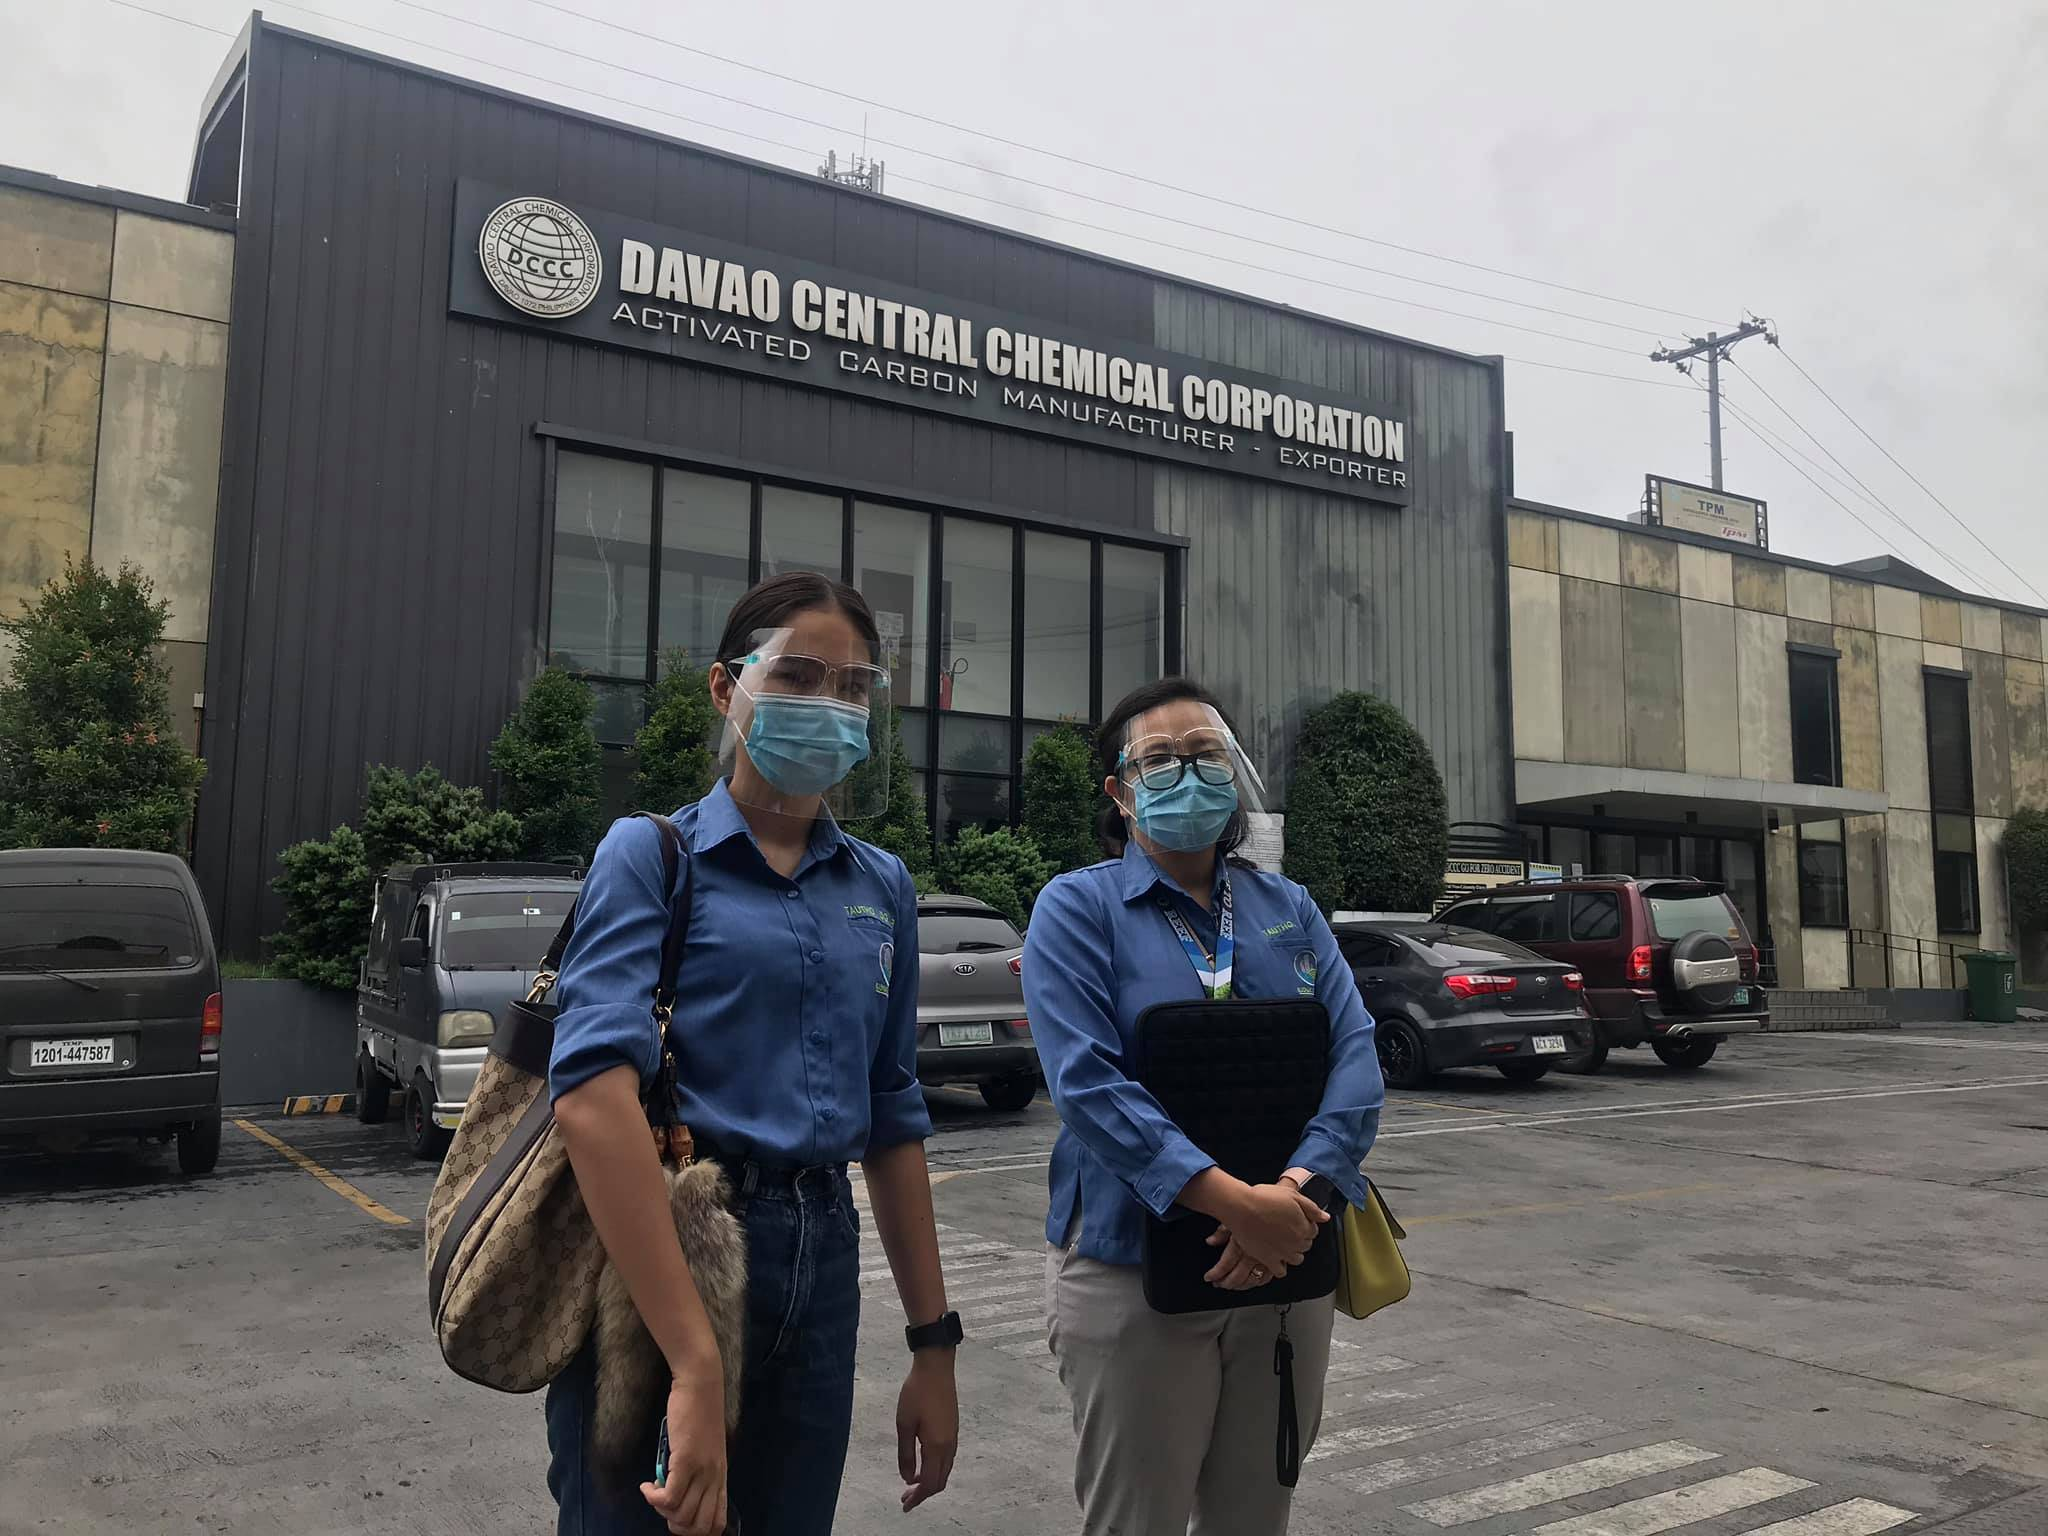 R2R Embarks a new project with Davao Central Chemical Corporation (DCCC)